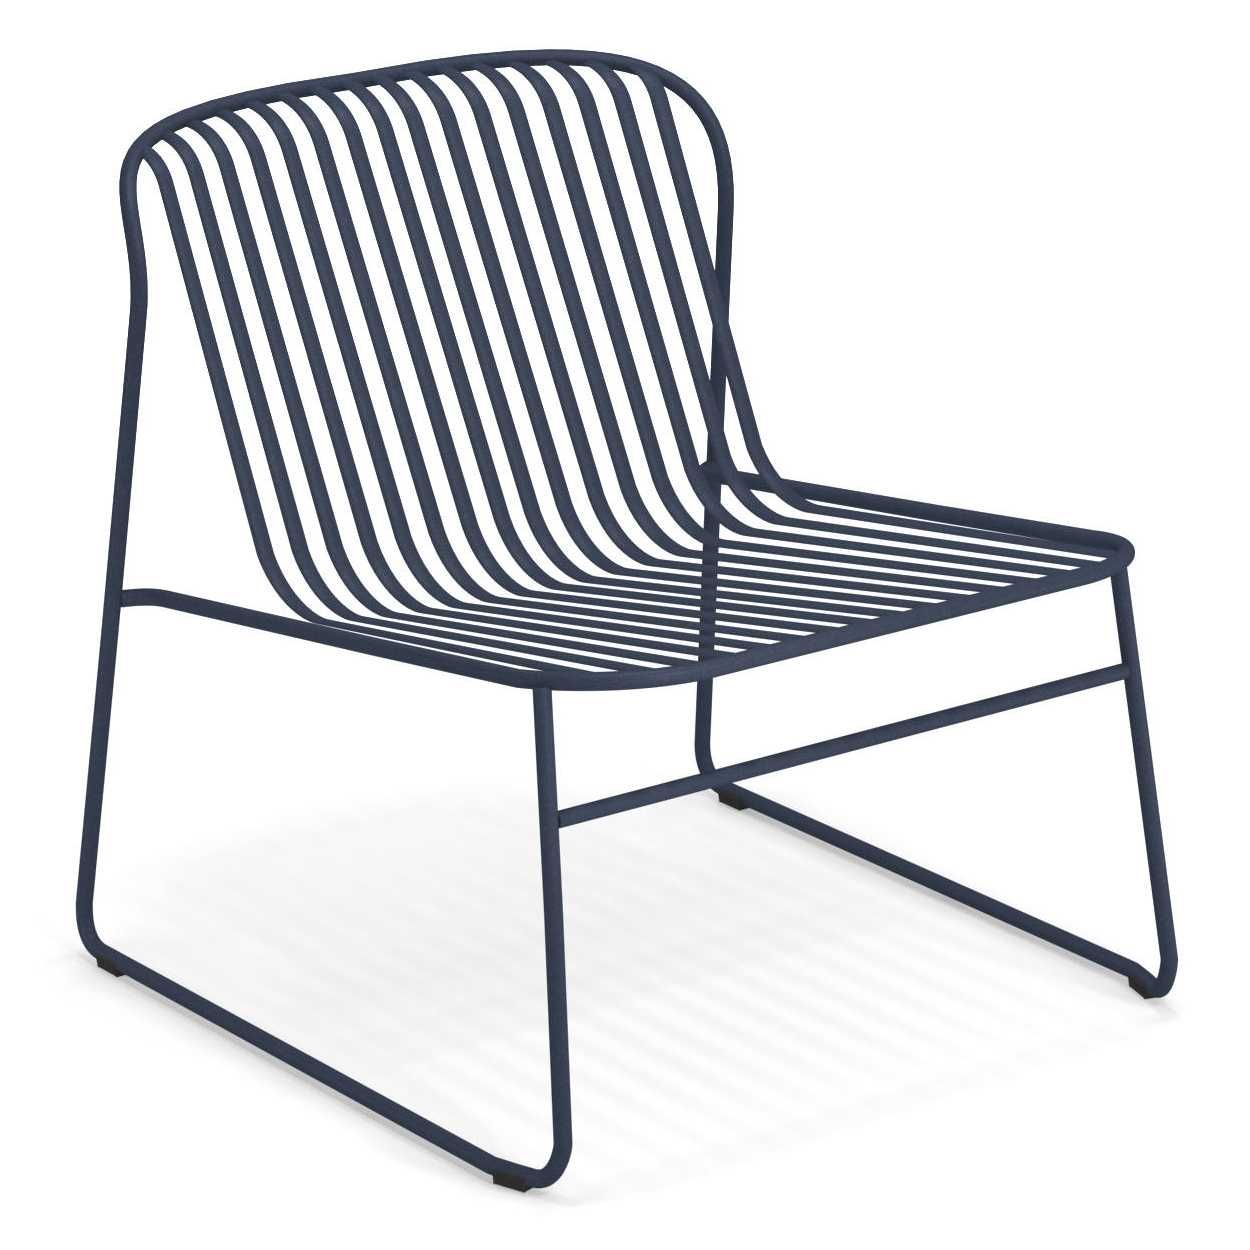 Emu Riviera fauteuil donkerblauw